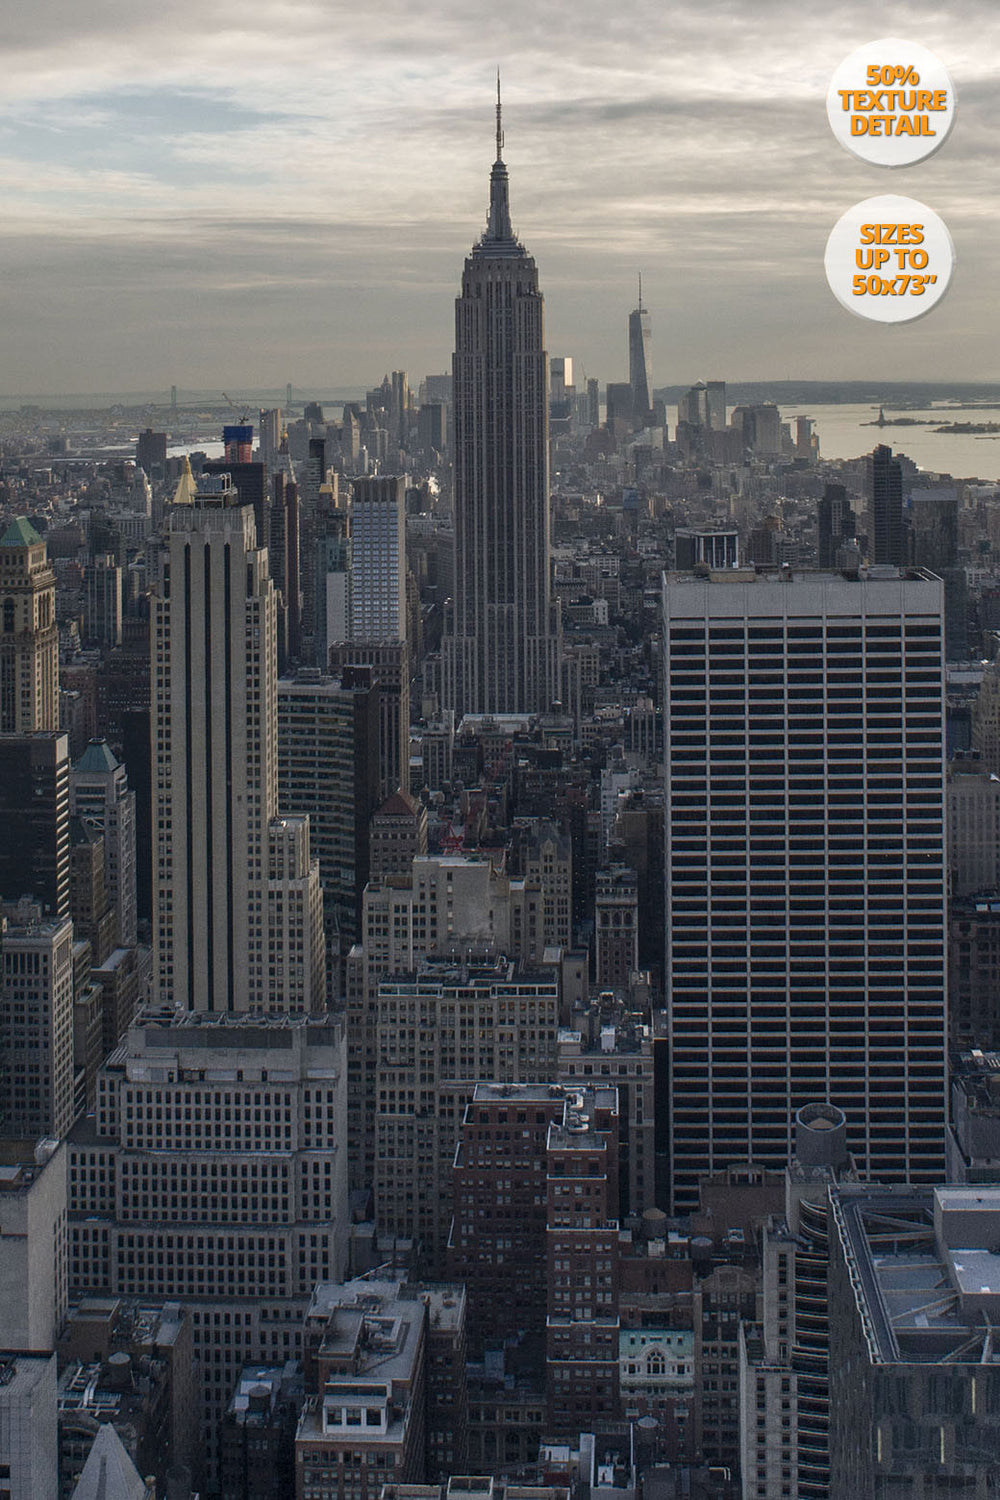 The Empire State Building before sunset, Midtown Manhattan, US. | View of the Print at 50% magnification detail.